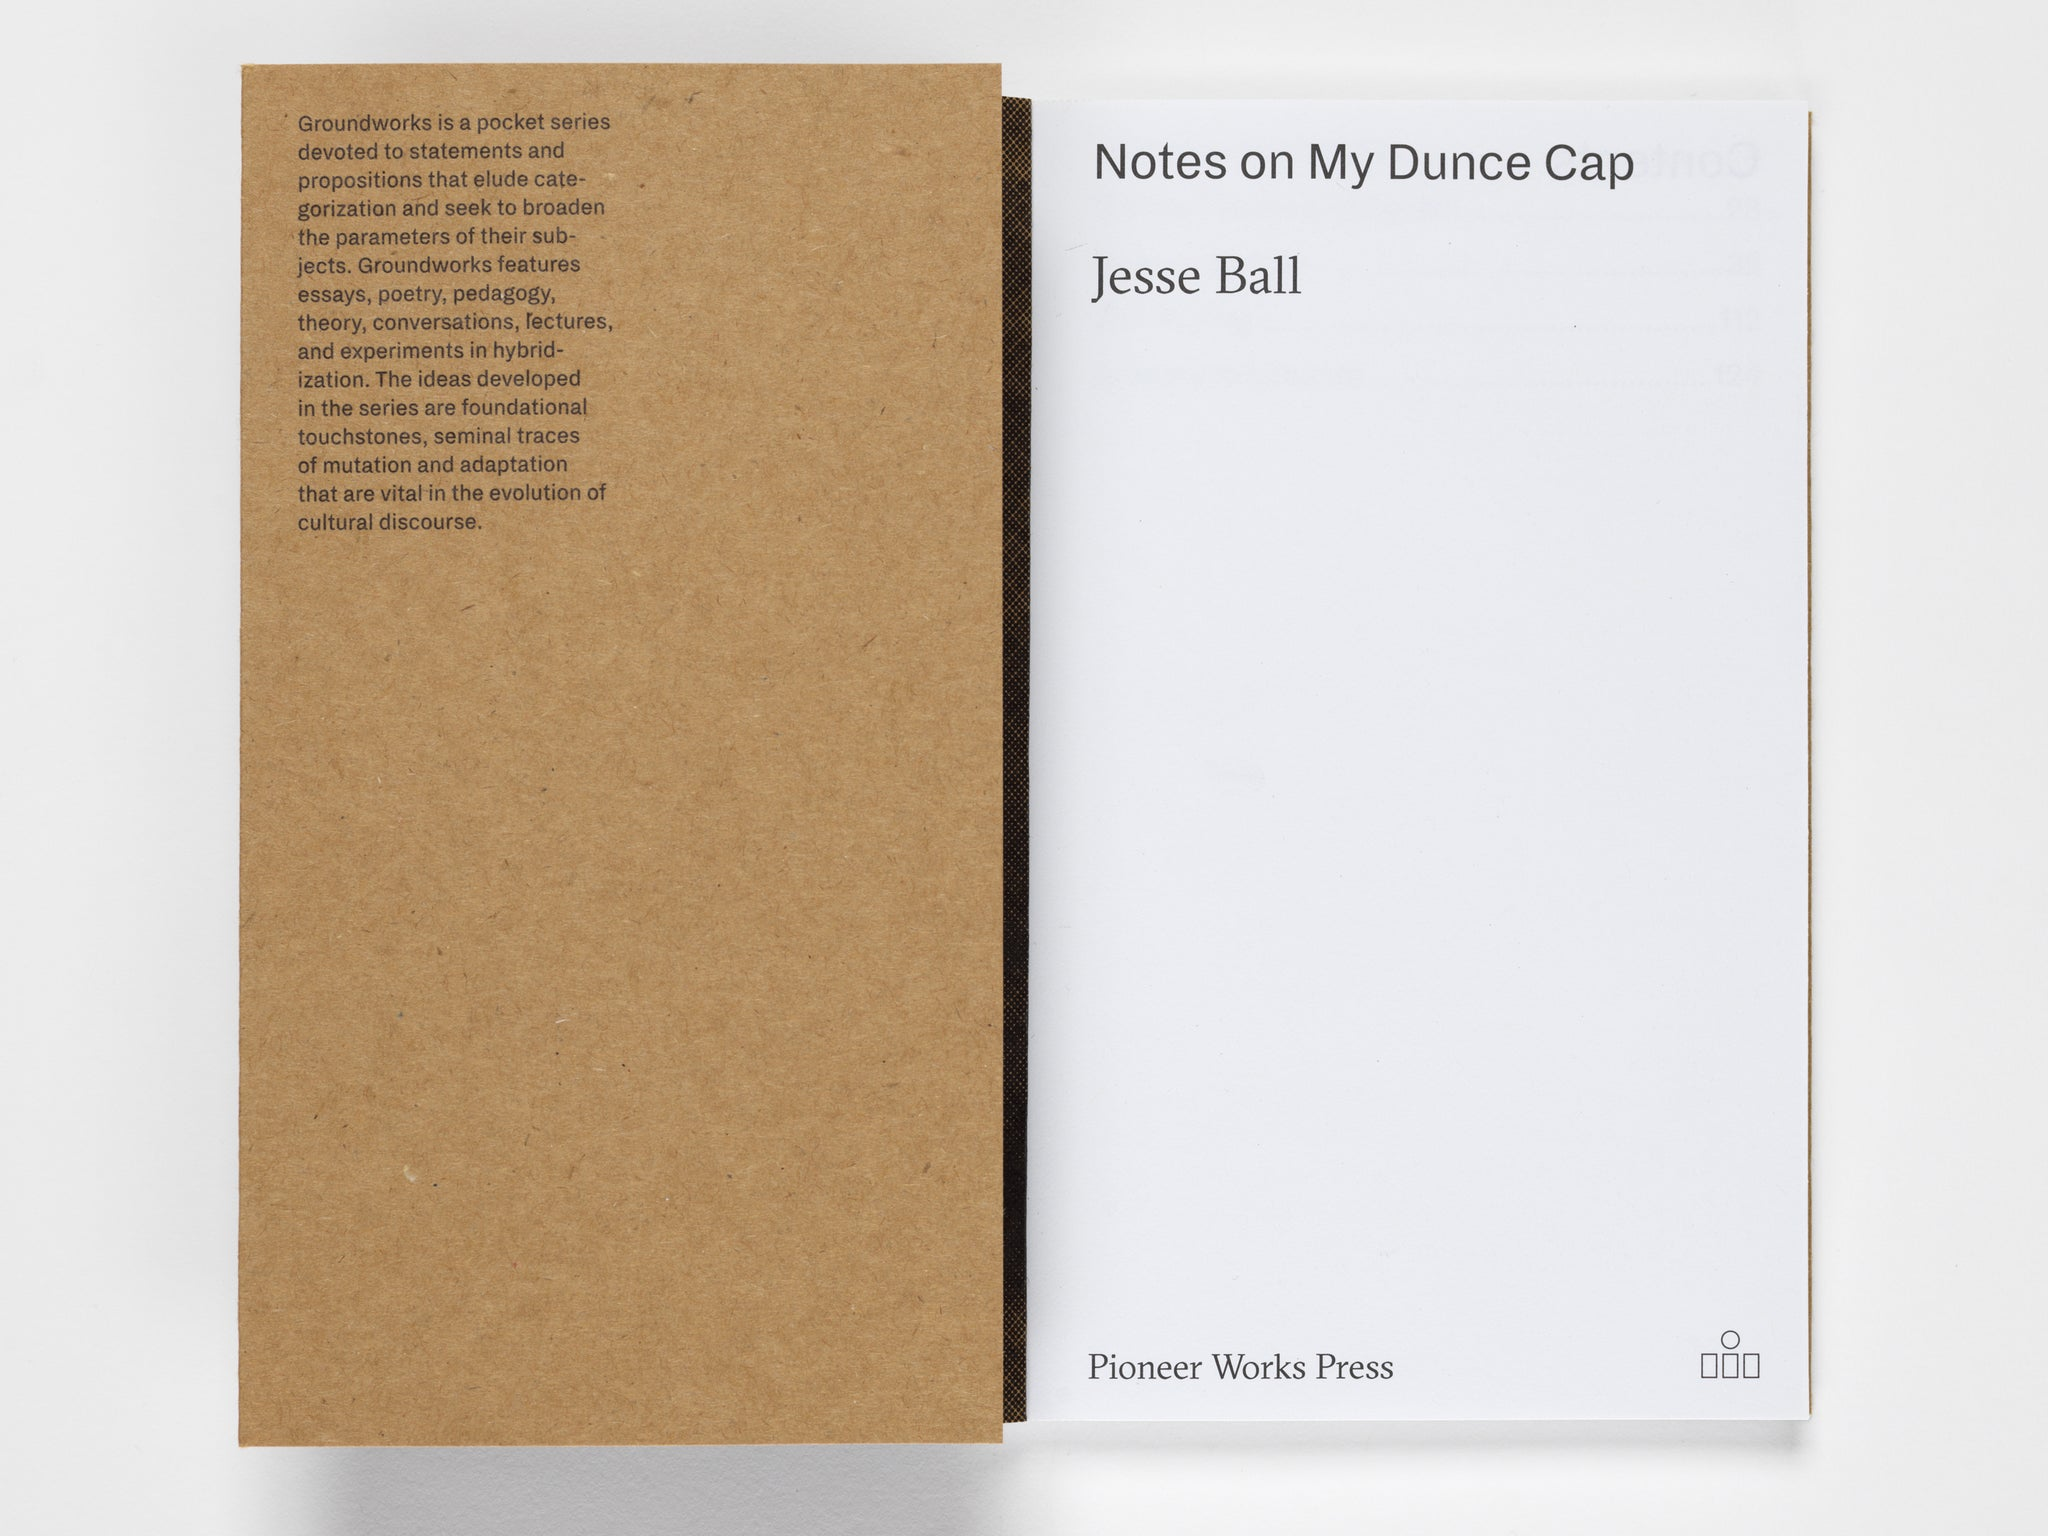 Notes on My Dunce Cap